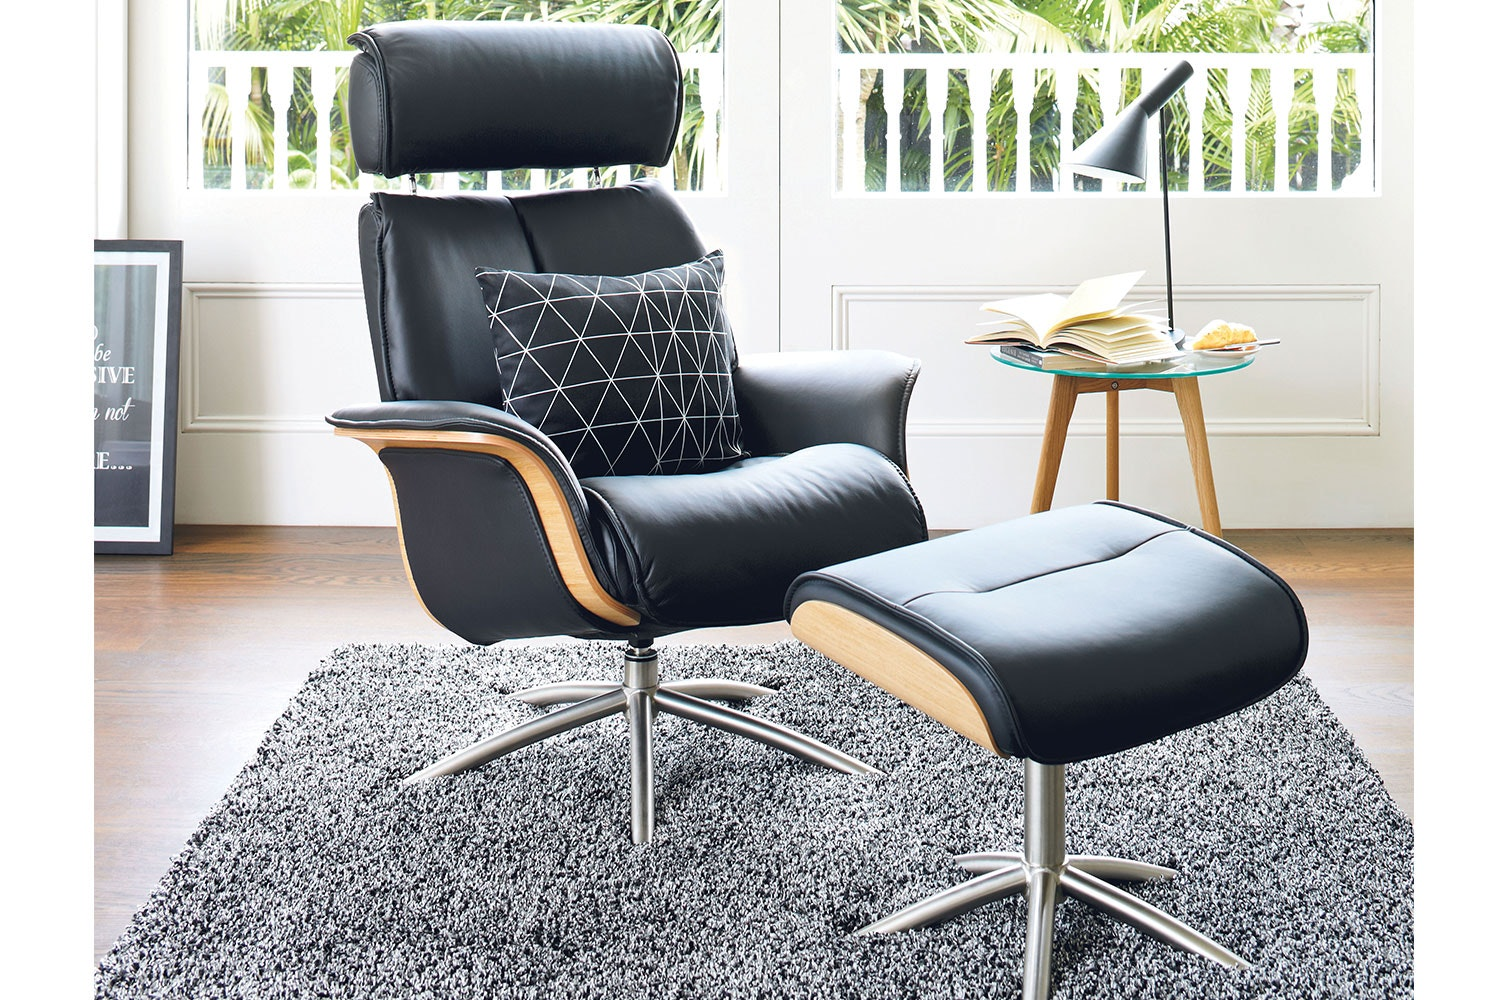 Space Leather Recliner Chair and Footstool - Trend- IMG & Space Leather Recliner Chair and Footstool - Trend- IMG | Harvey ... islam-shia.org